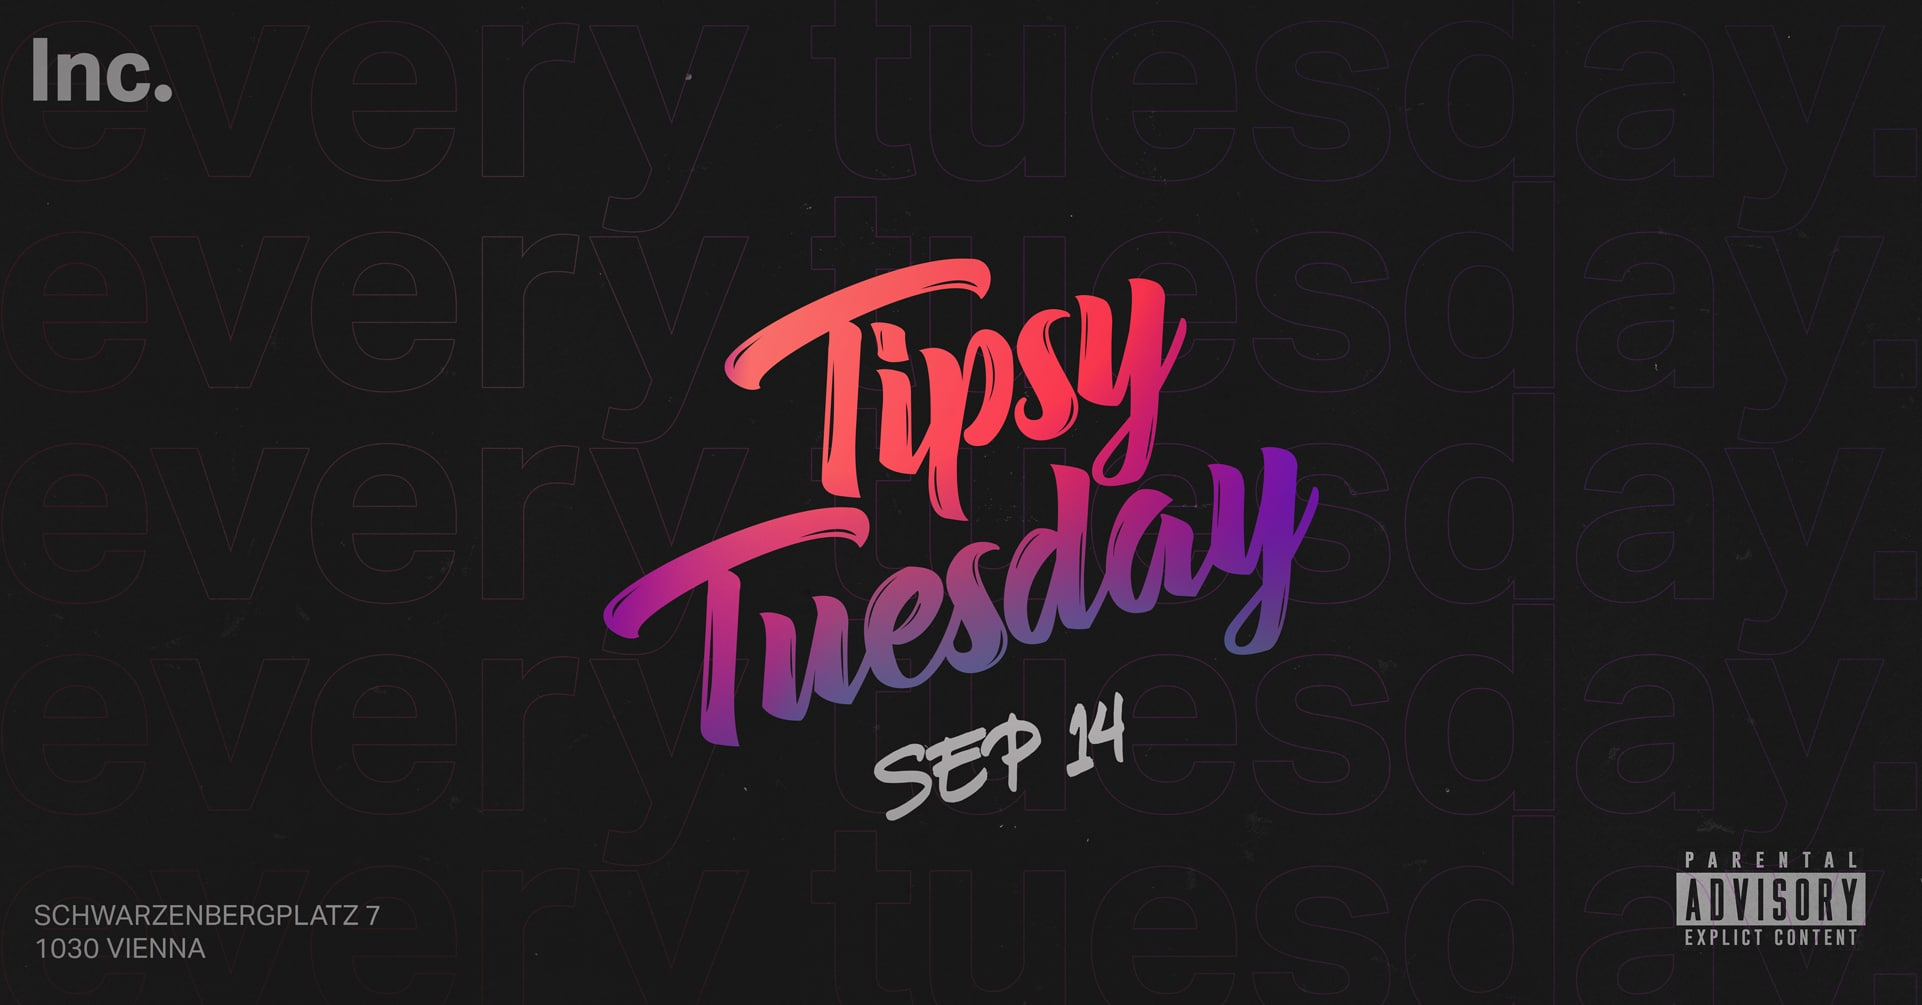 Events Wien: Every Tuesday is TIPSY TUESDAY